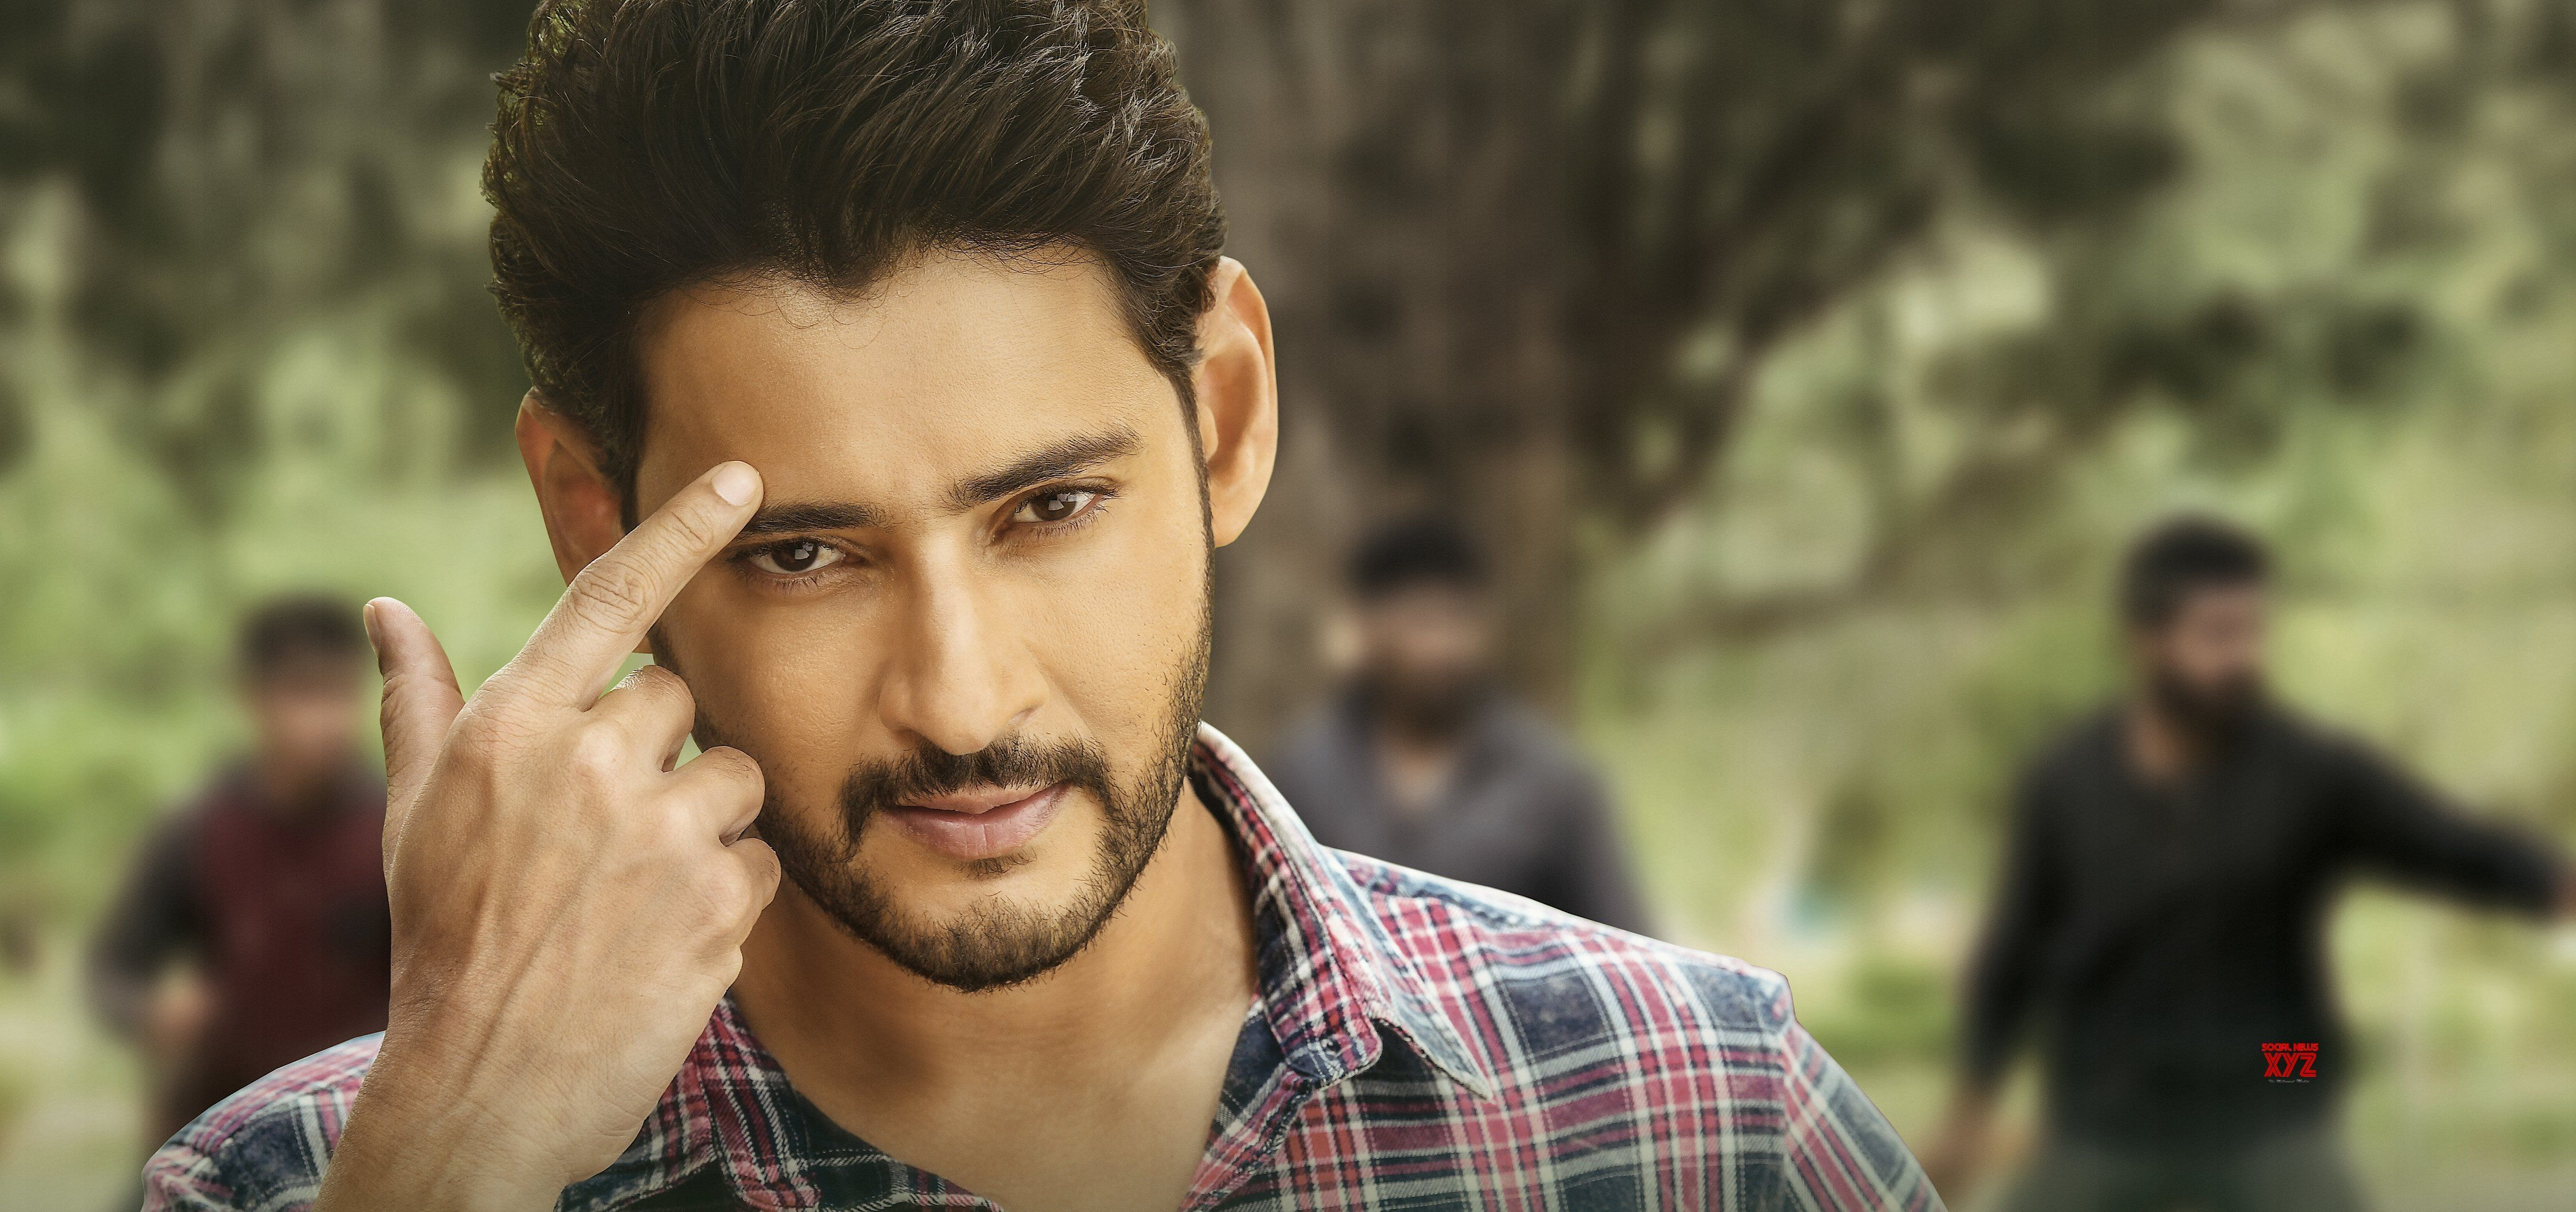 Maharshi Movie 2 Days To Go Hd Poster And Still Social News Xyz Movies Actors Images Cute Girl Face